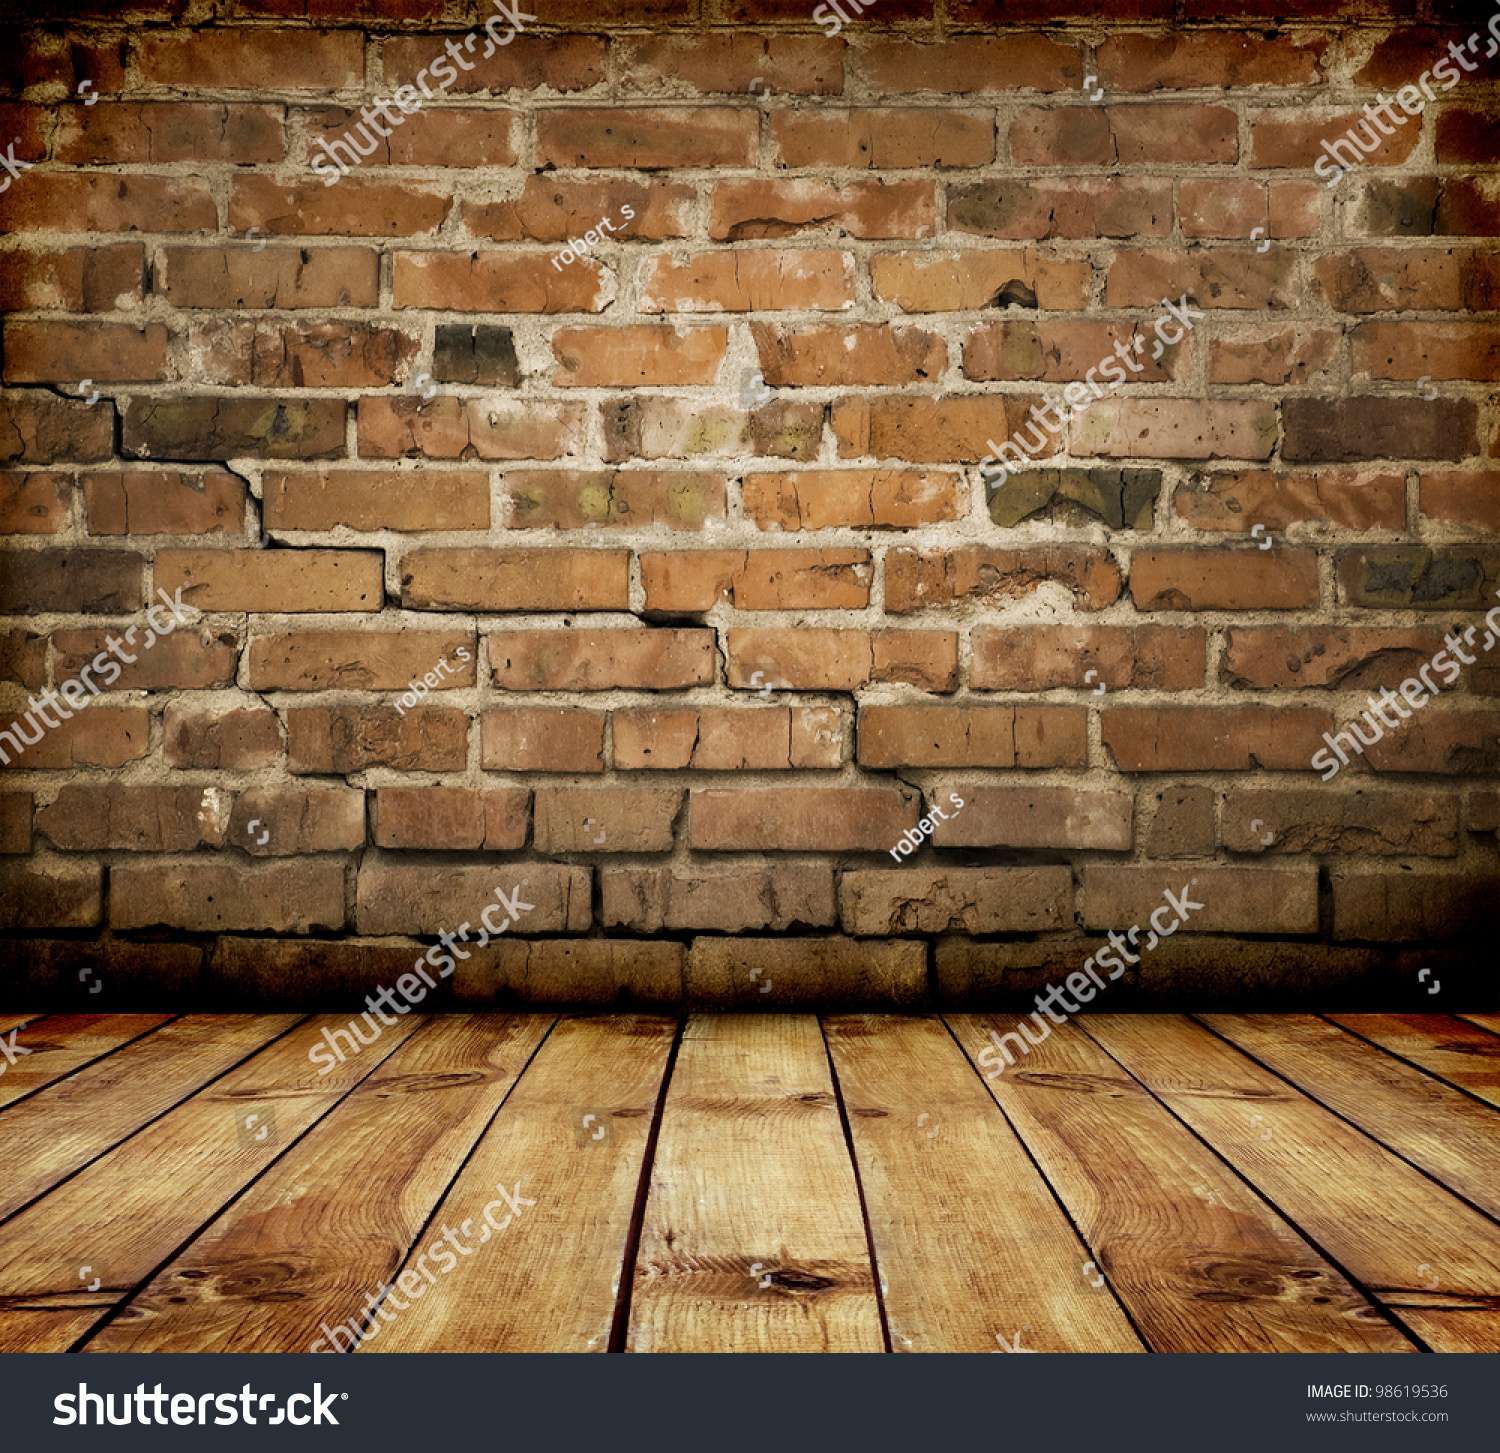 room interior vintage with brick wall and wood floor - Room Interior Vintage Brick Wall Wood Stock Photo 98619536